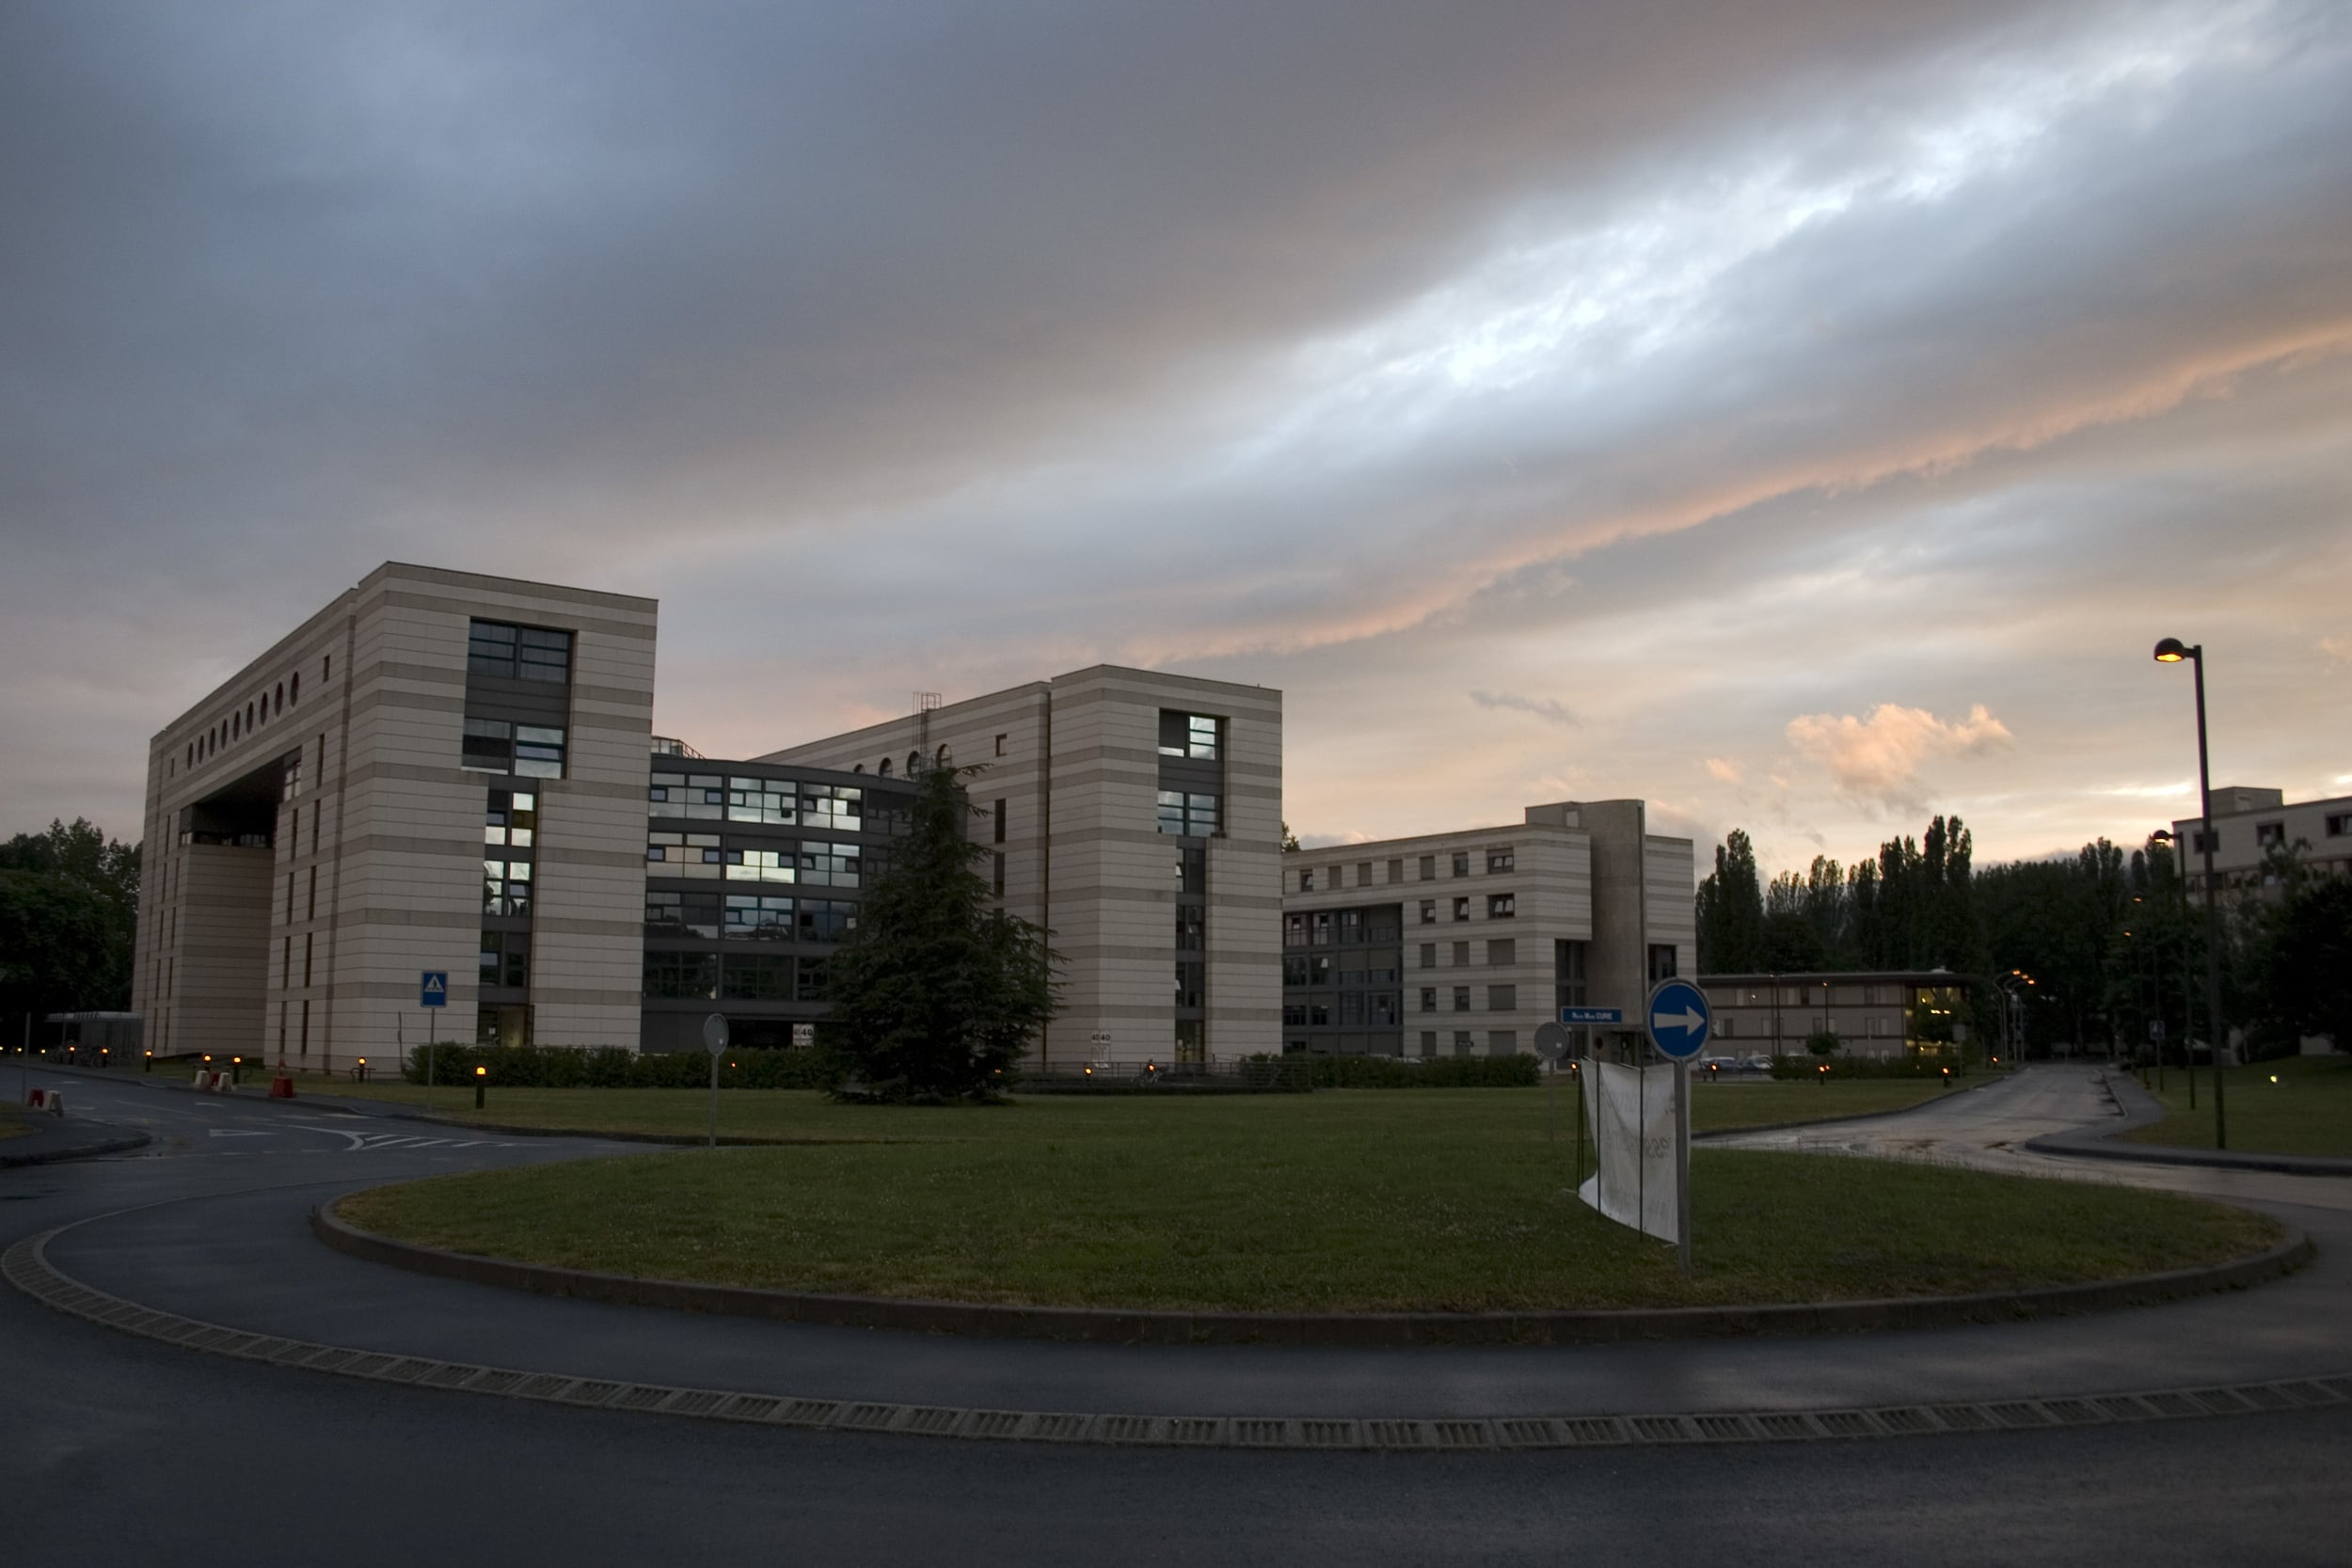 An exterior view of Building 40 at CERN, situated between Meyrin, Switzerland and Saint-Genis-Pouilly, France.